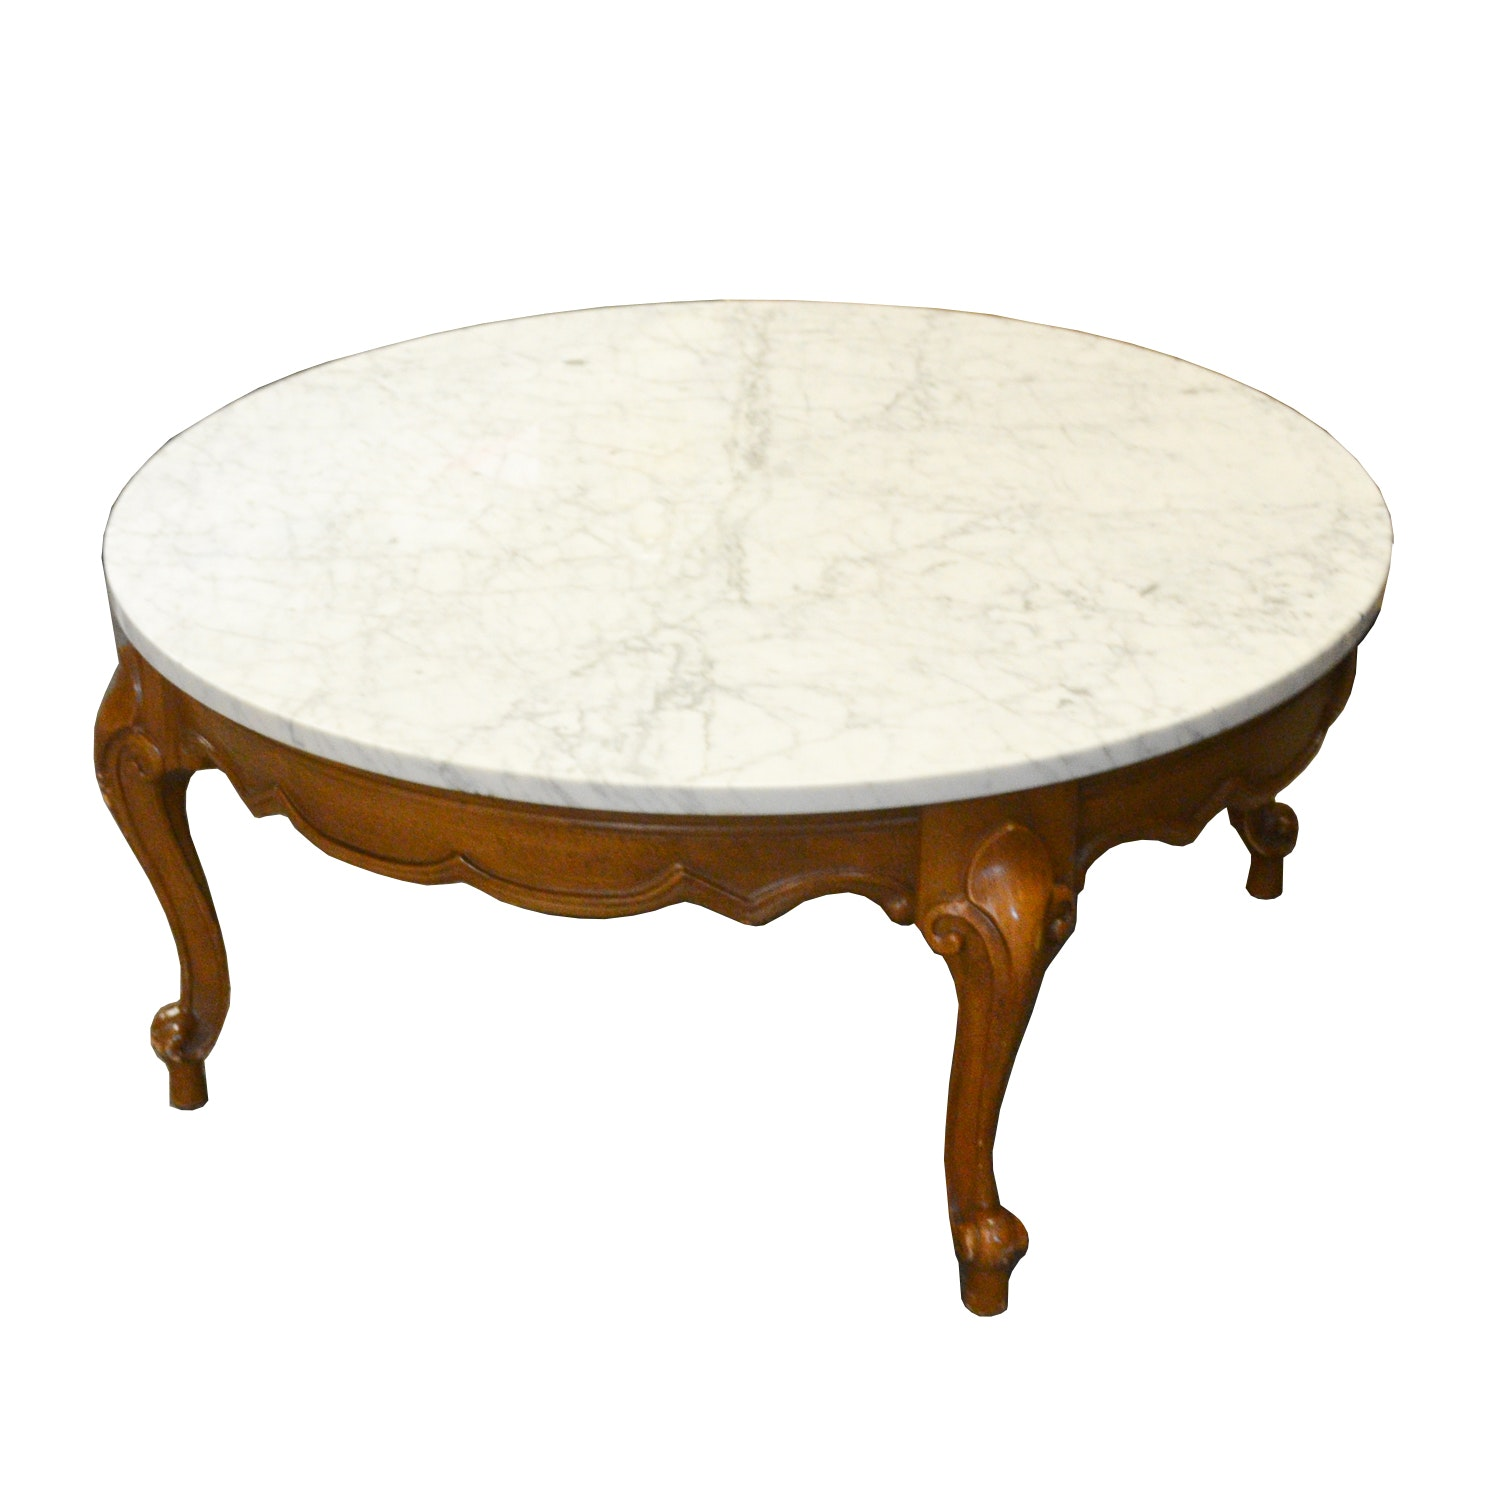 Louis XV Style Circular Coffee Table with Marble Top